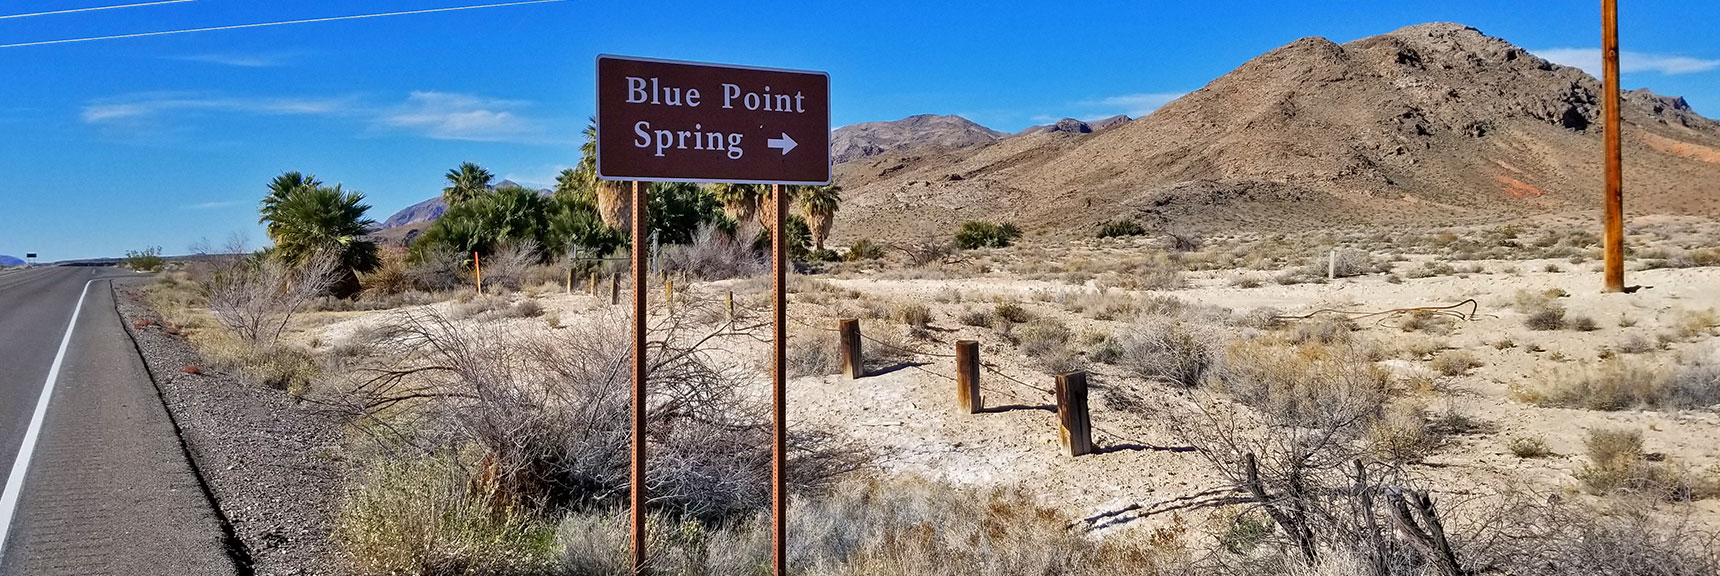 Blue Point Spring On Northshore Road in Lake Mead National Park, Nevada